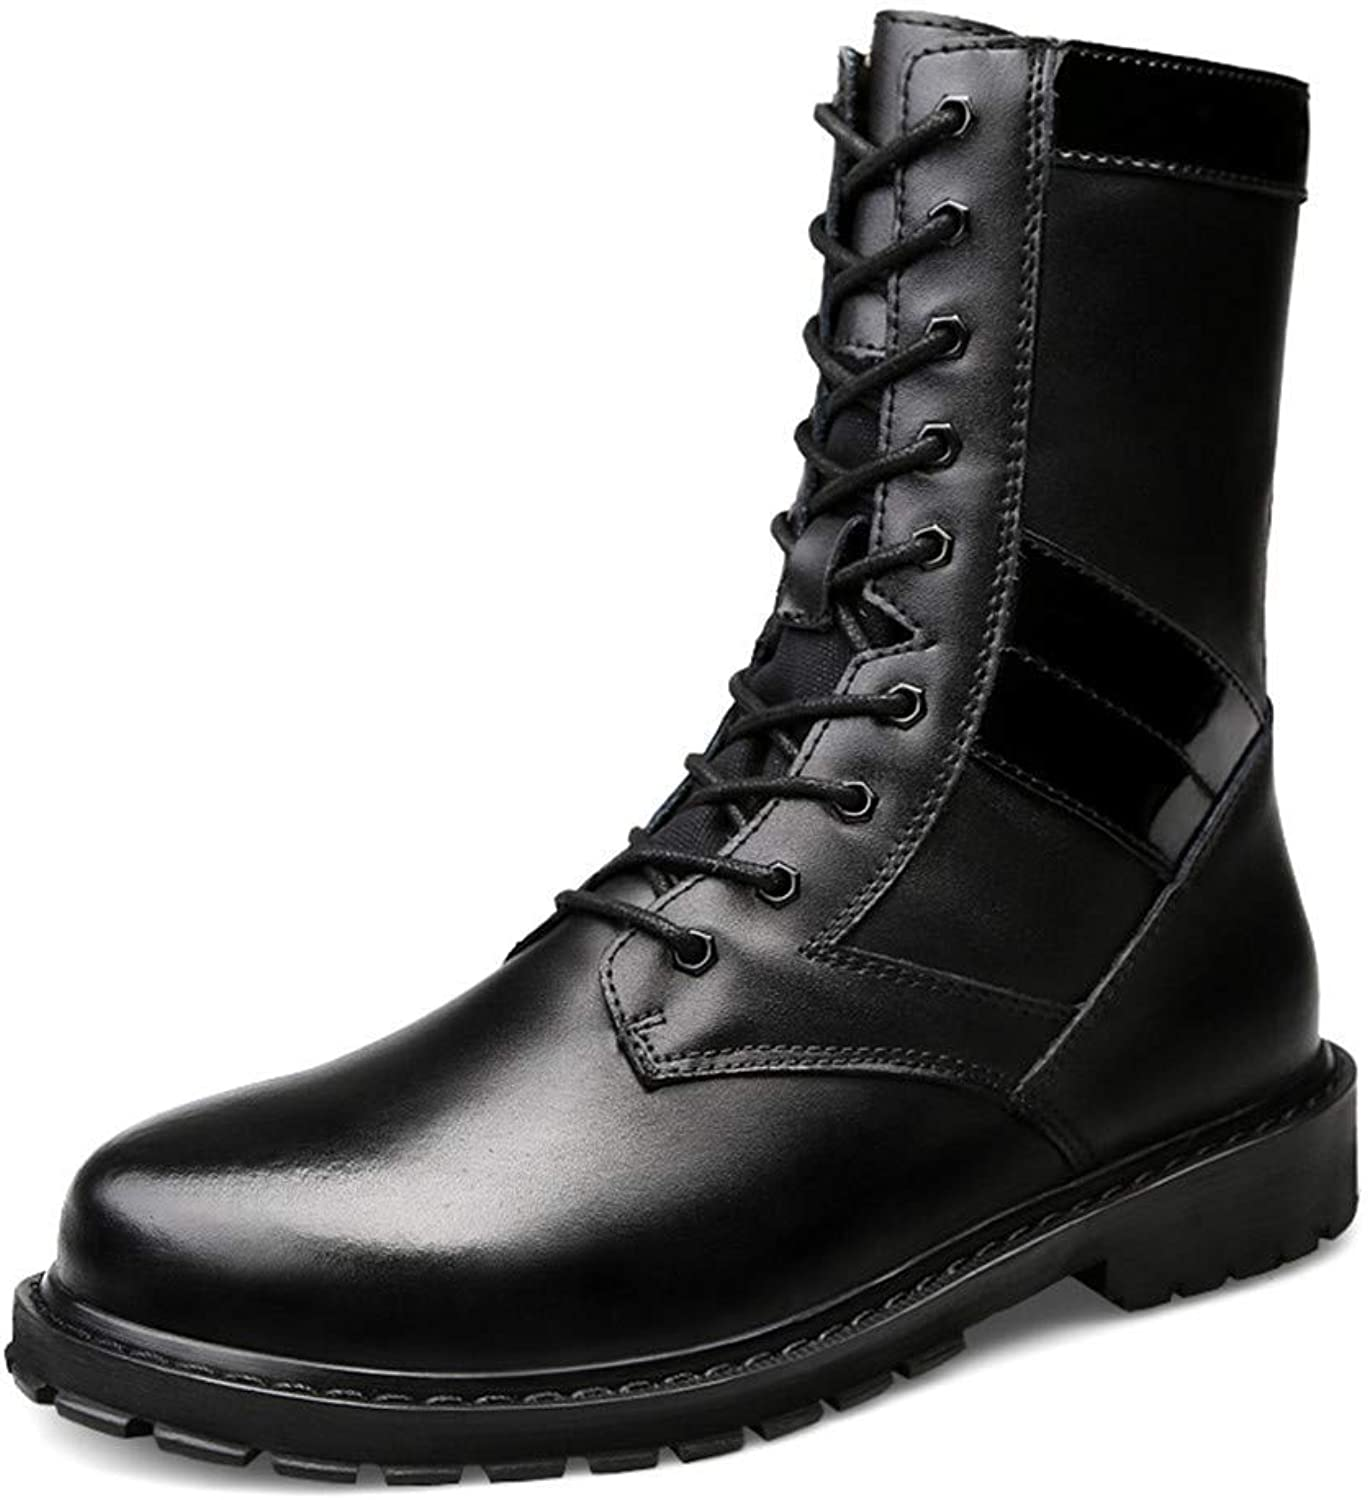 Fuxitoggo Men's Fashion Mid-Boots, Casual High-top Sole Imitation Army Boots (Warm Velvet Optional) (color  Warm Black, Size  42 EU) (color   Black, Size   44 EU)